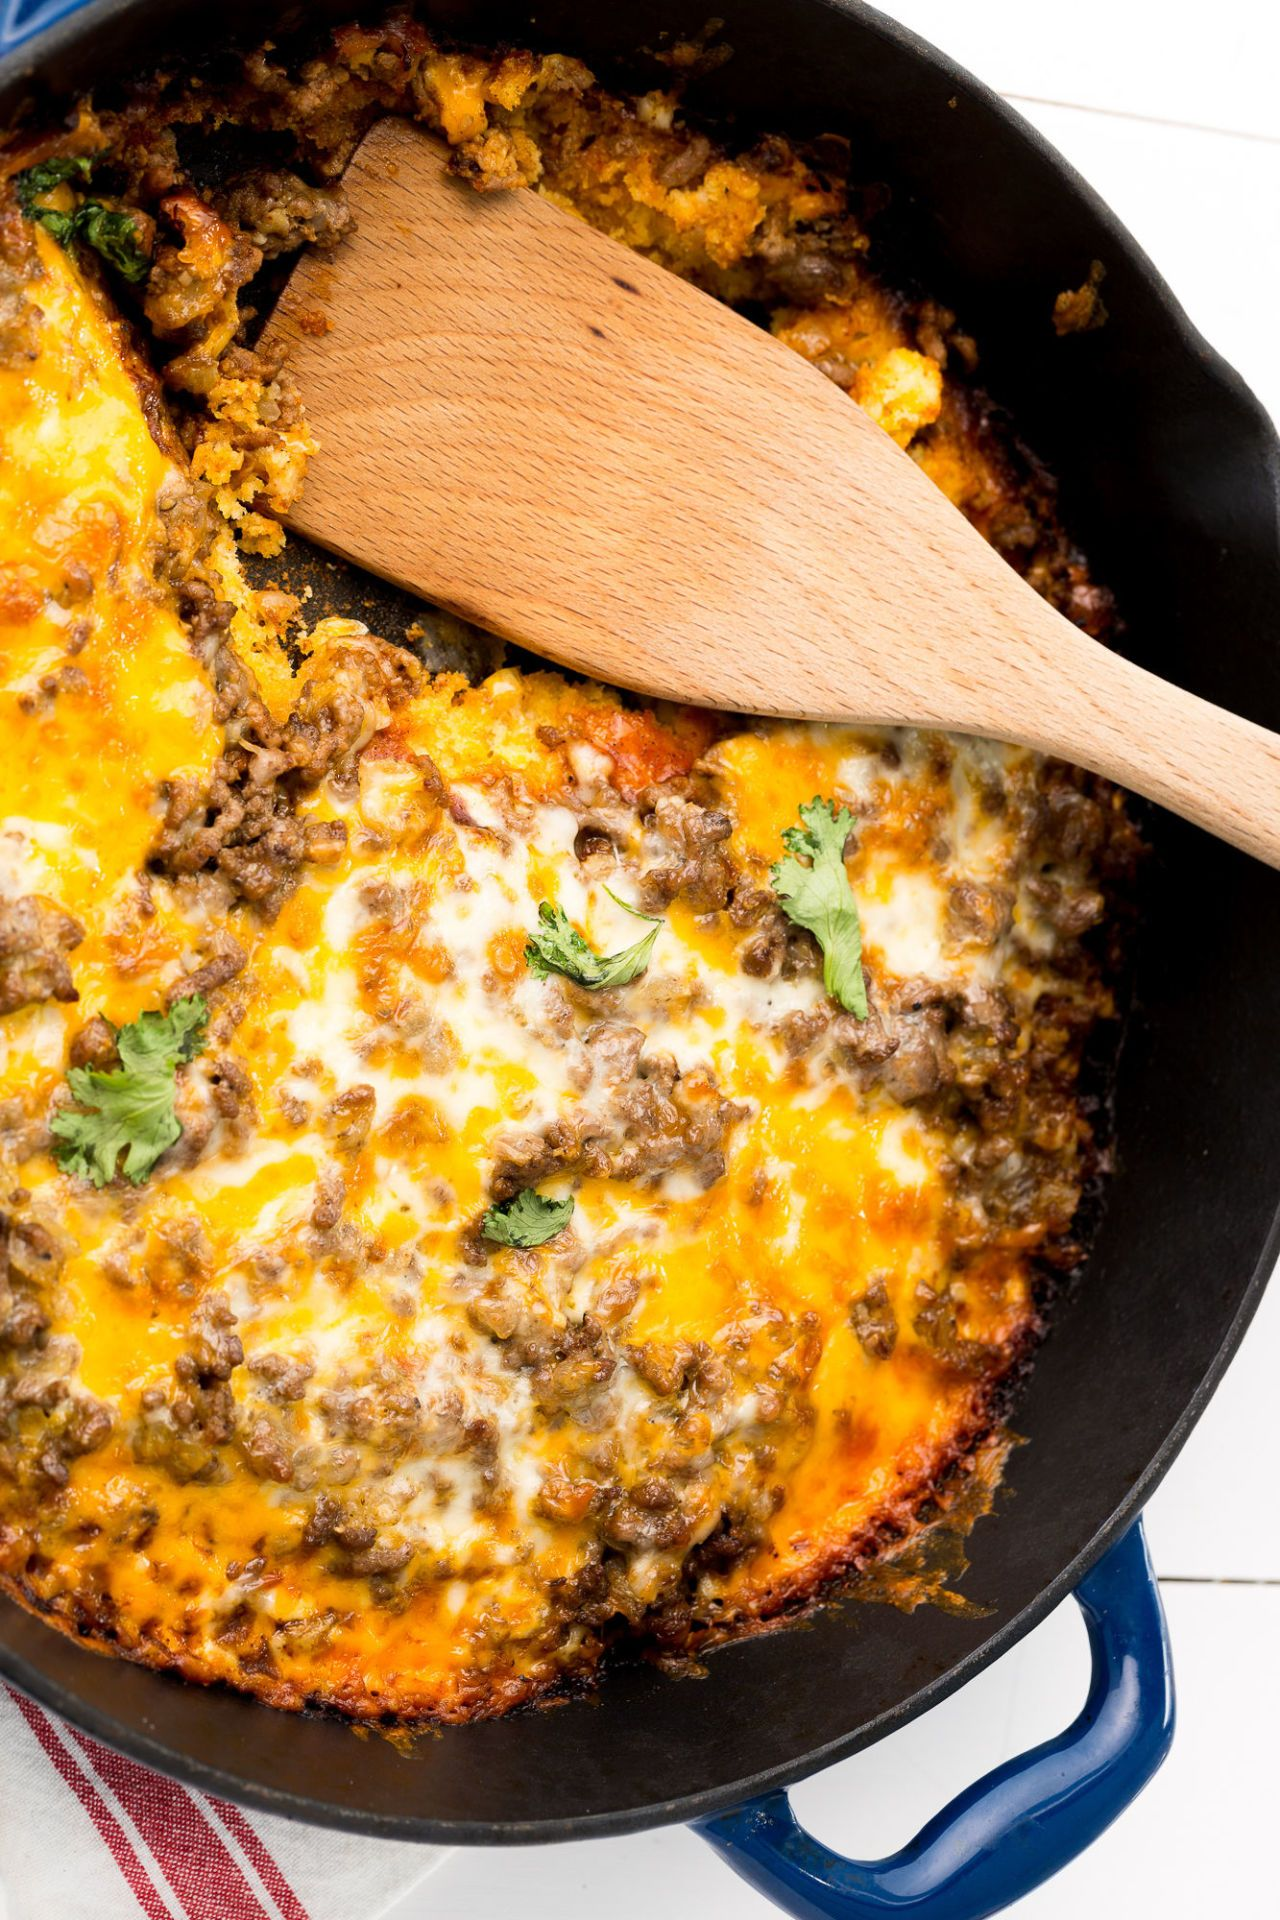 Recipes With Ground Beef Lettuce Wrap: Tamale Pie, Ground Beef